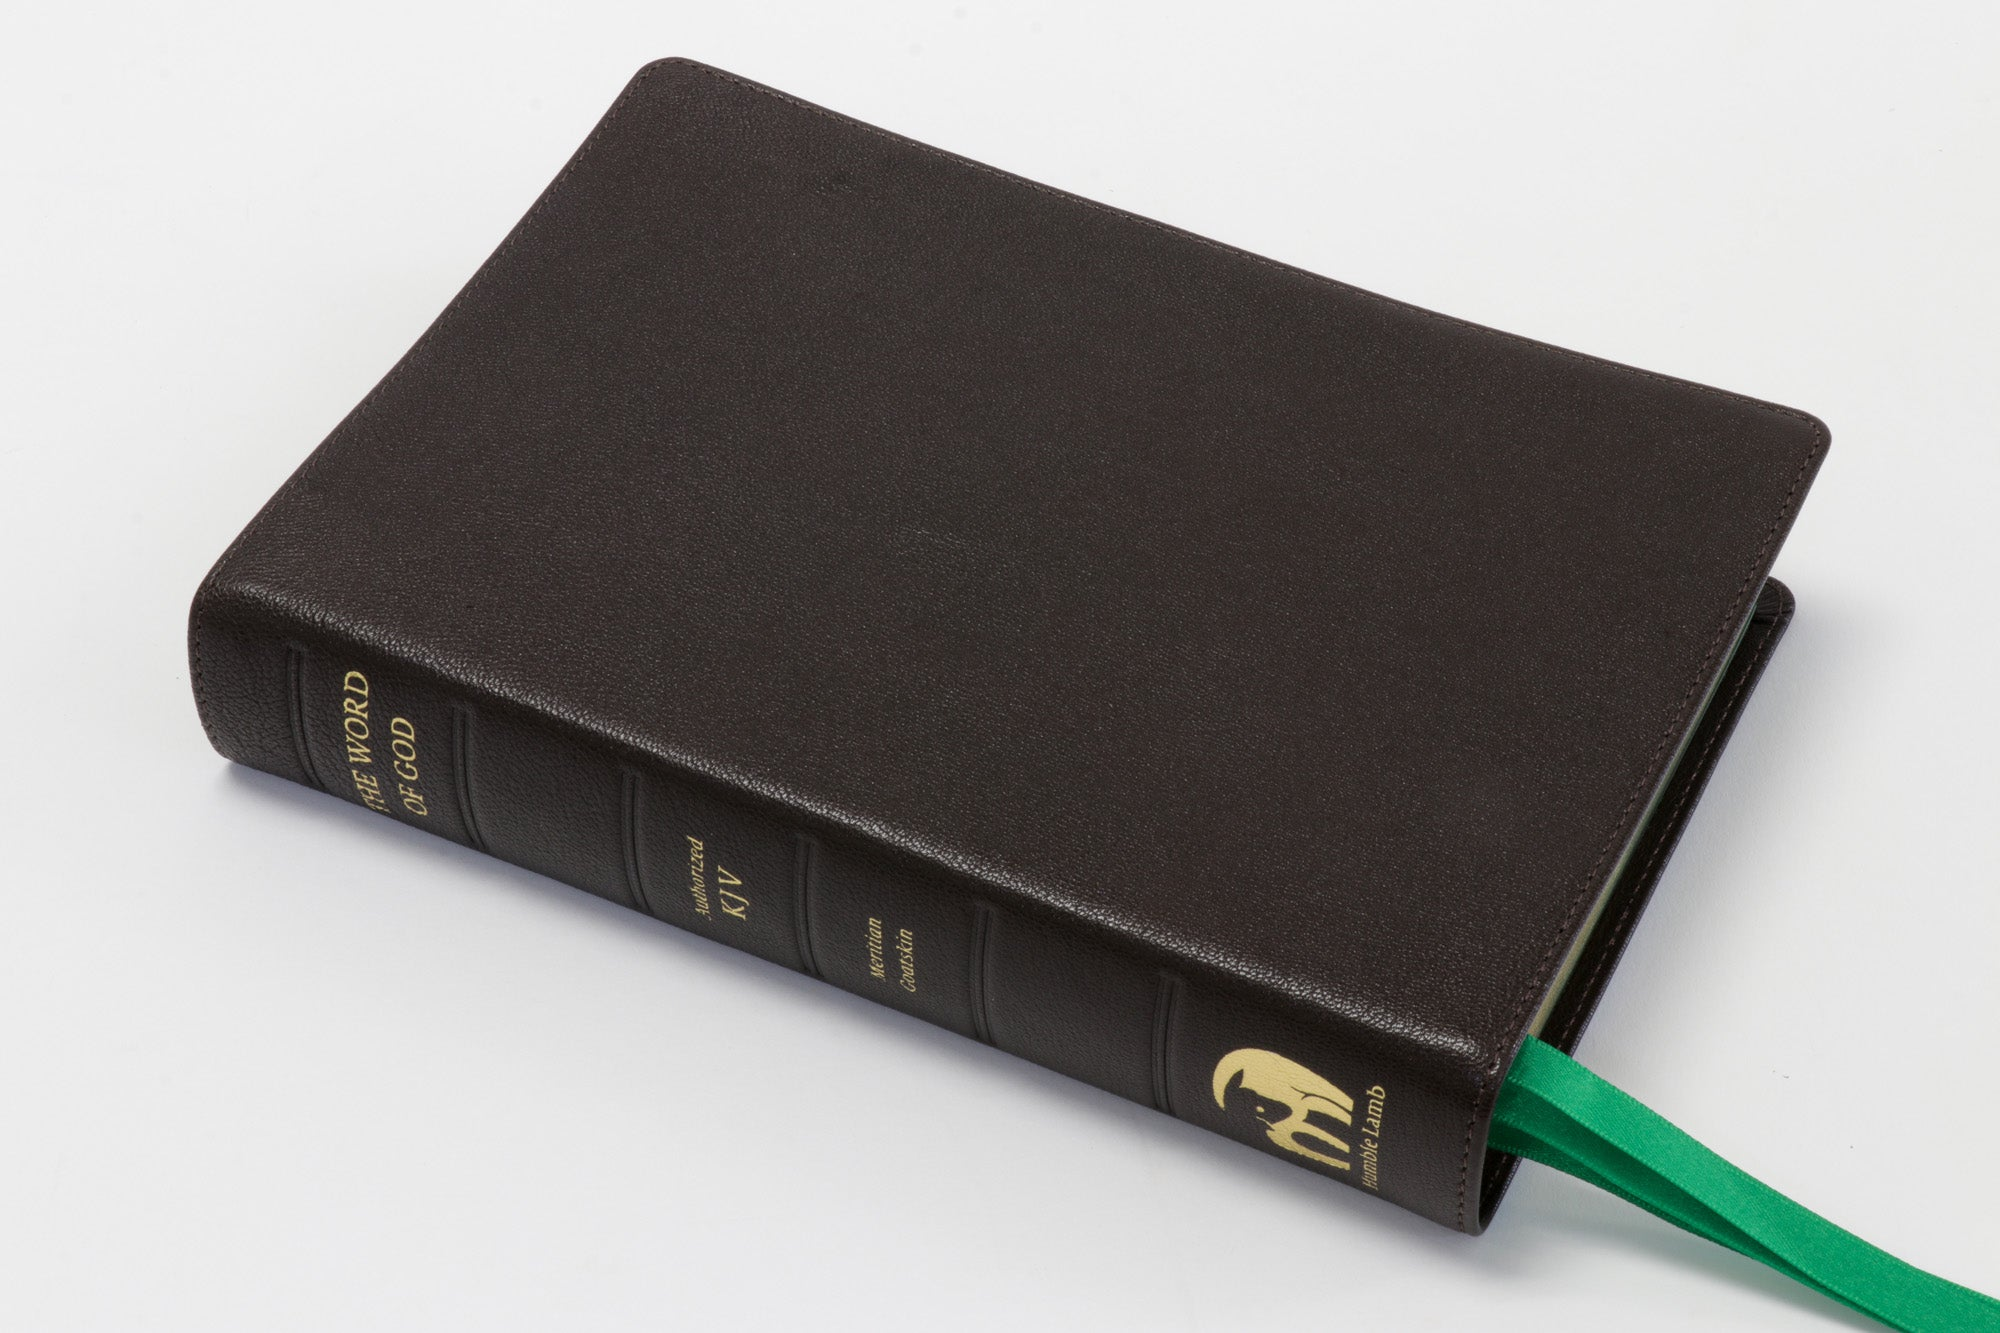 KJV Lion - Dark Brown (Paste-off) - Premium Bible with illustrations from Gustave Dore